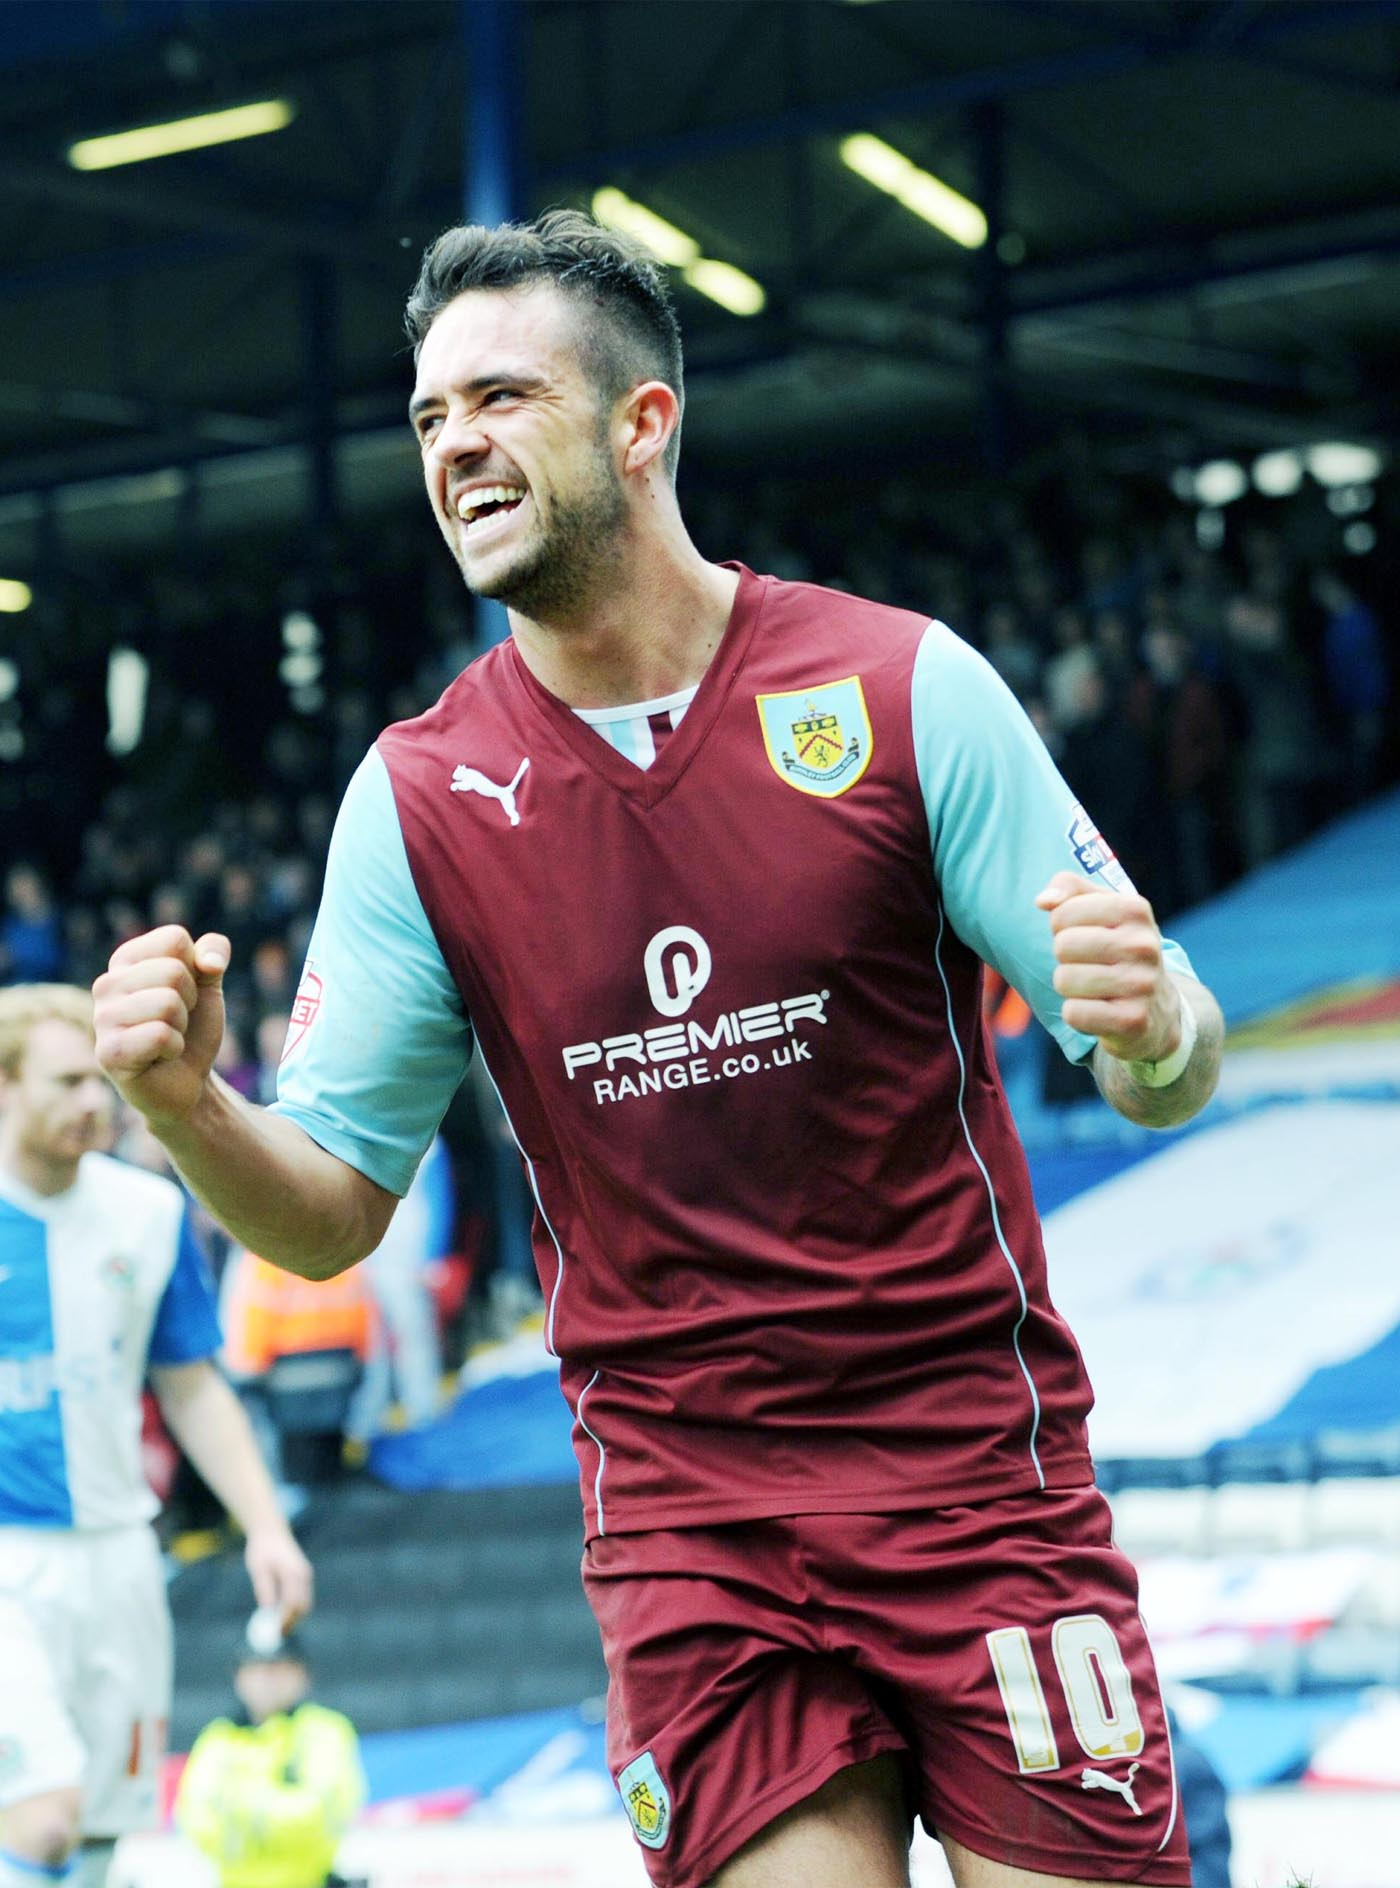 Clarets star gives young fan a season ticket in surprise visit